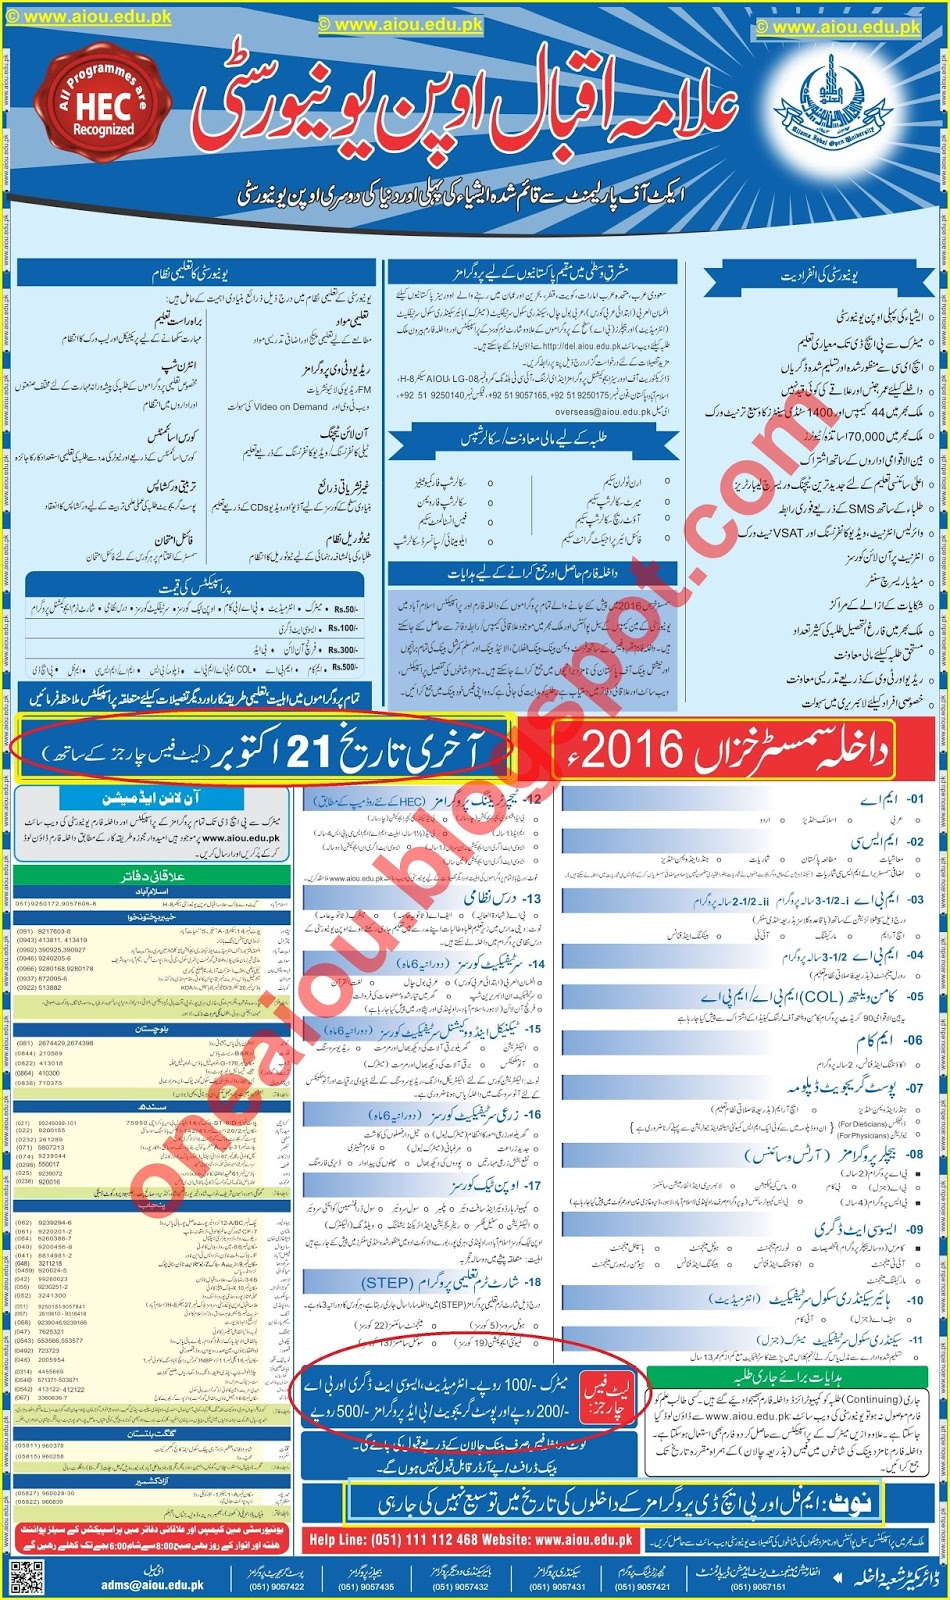 aiou bank challan form for certificate